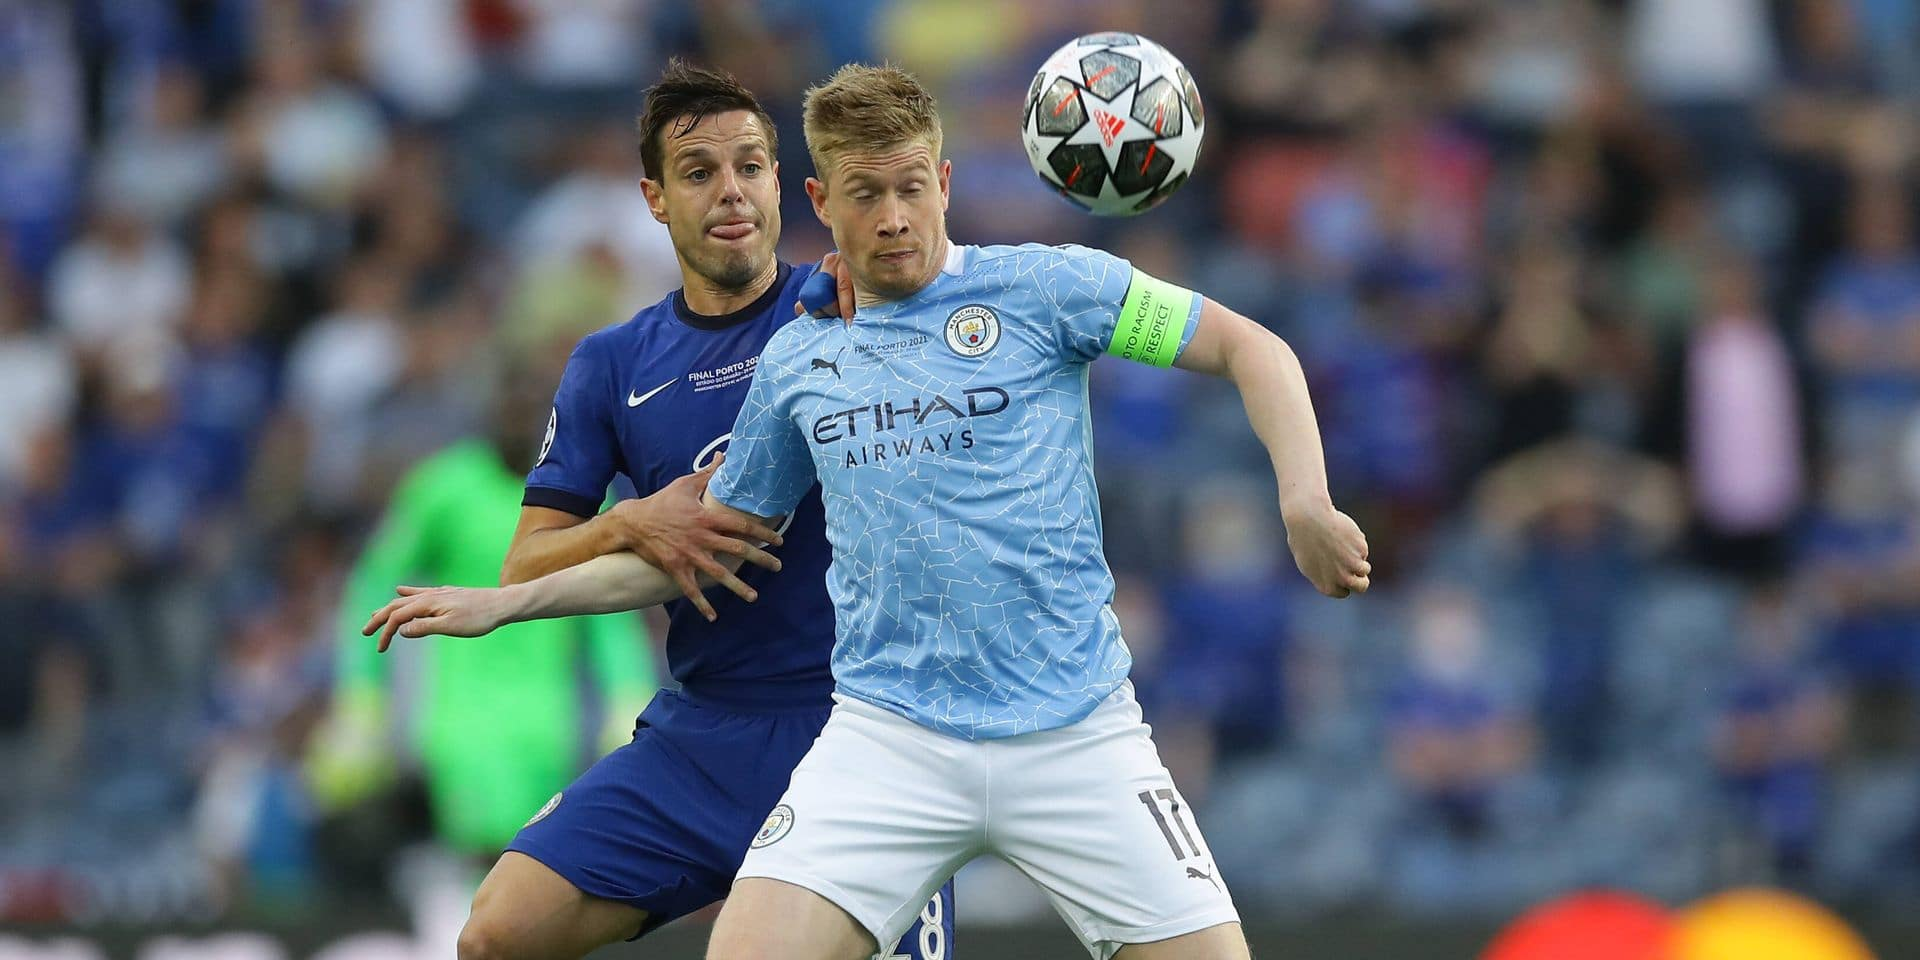 Porto, Portugal, 29th May 2021. Cesar Azpilicueta of Chelsea challenges Kevin De Bruyne of Manchester City during the UE